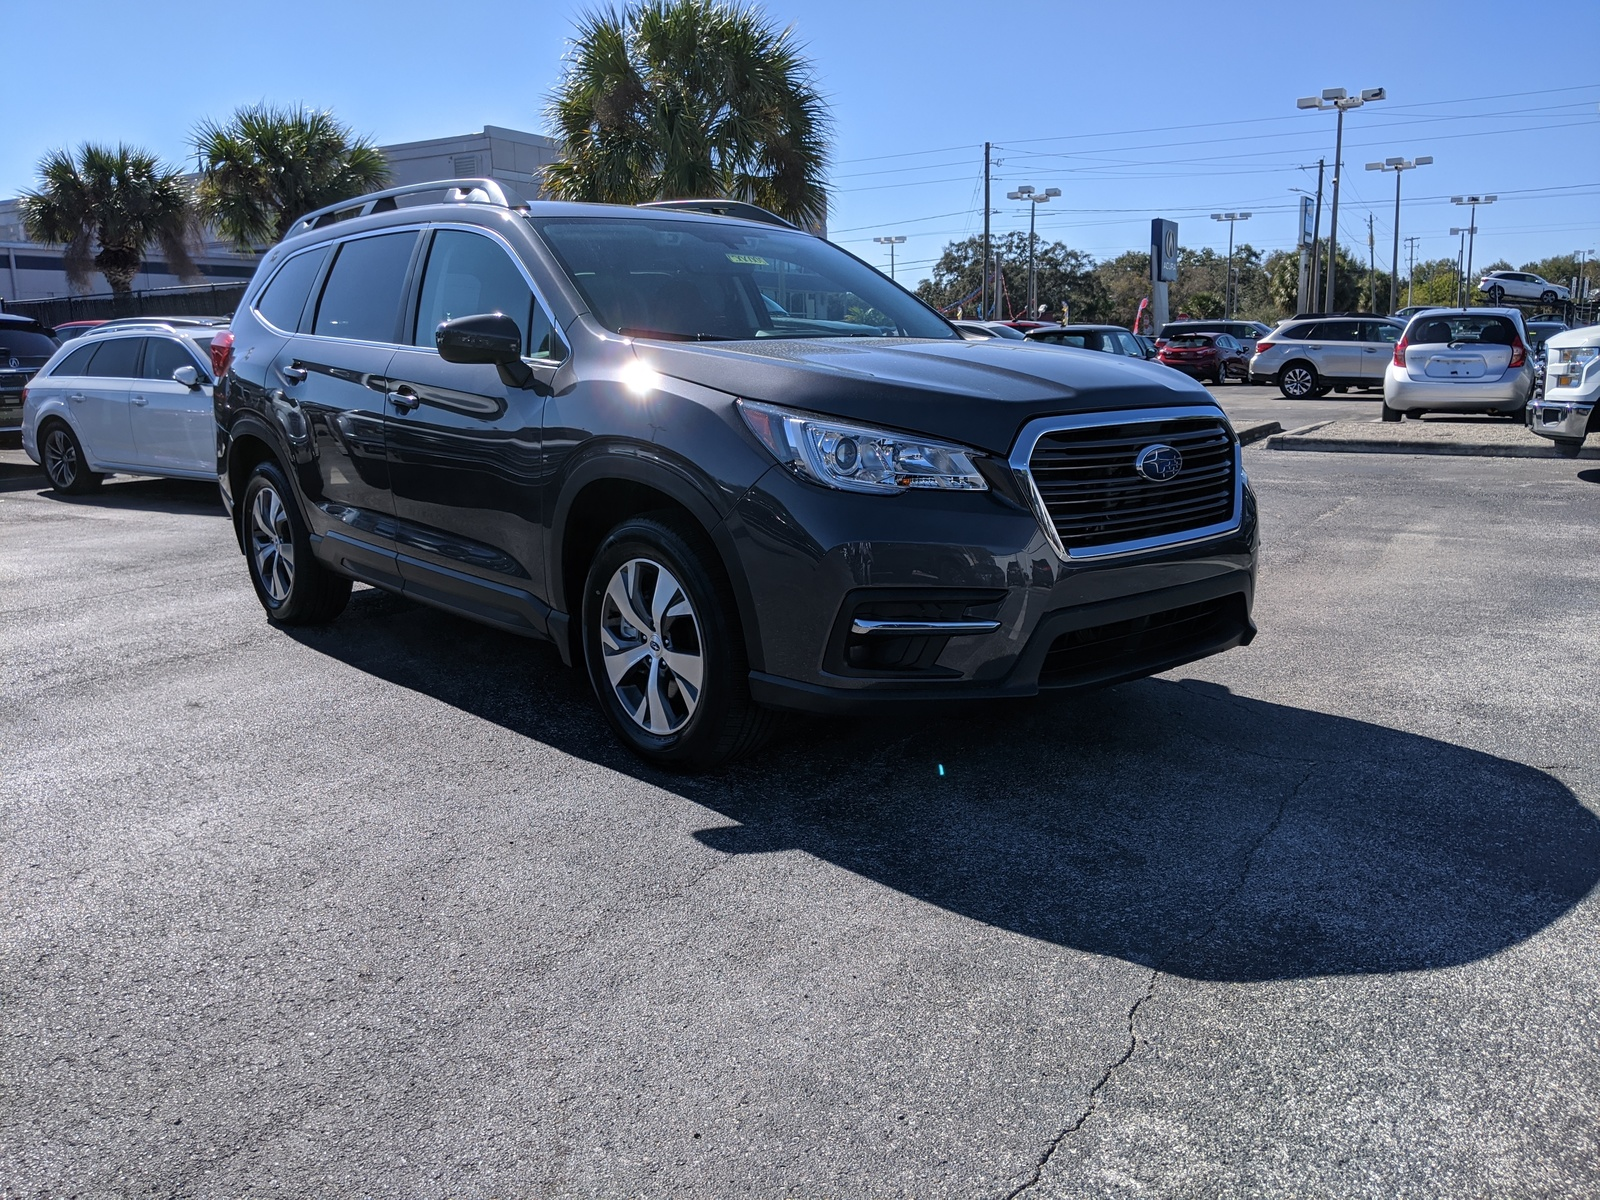 Pre-Owned 2020 Subaru Ascent Premium 7-Passenger